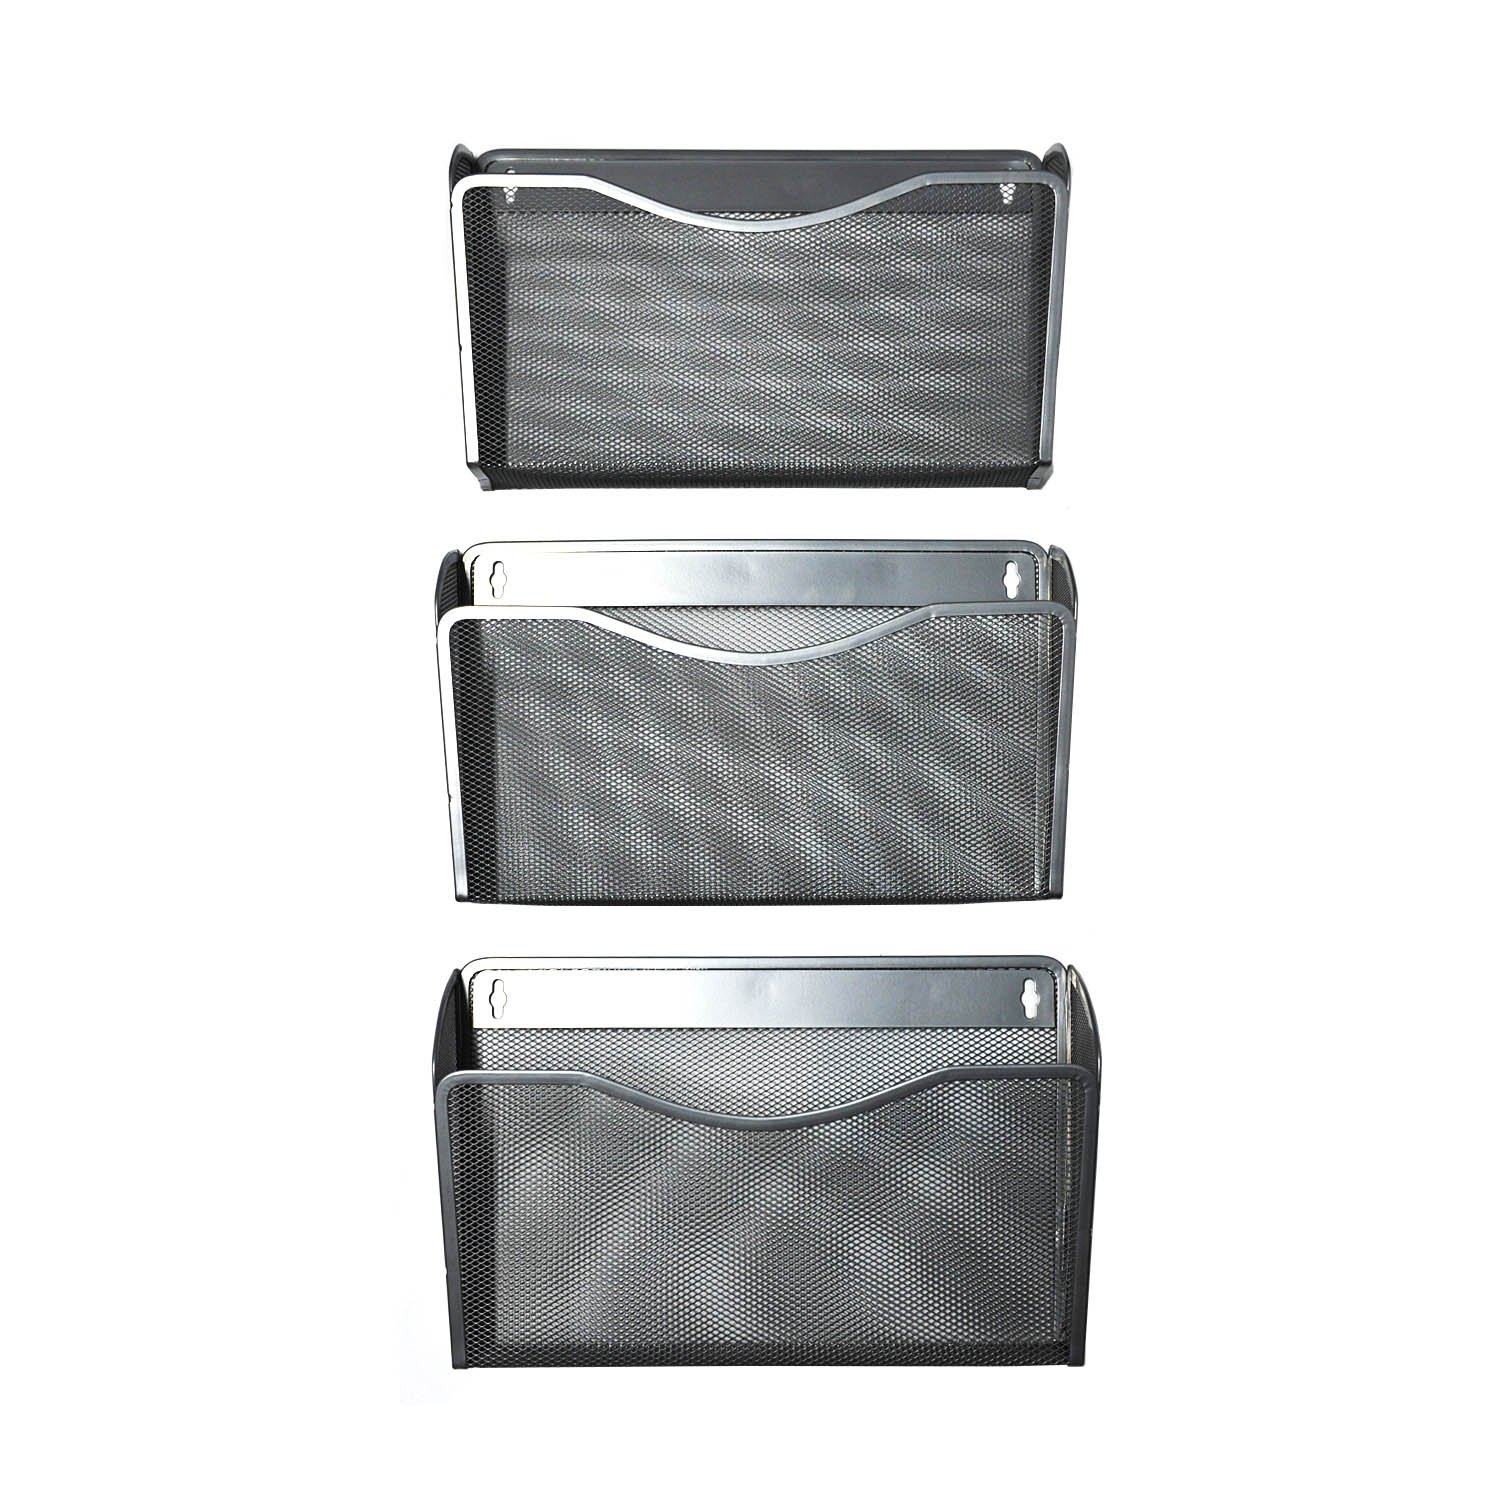 YIMU 3 Pack Mesh Hanging Wall Mount File Organizer Metal Mail Letter Pocket Holder for Home/Office, Silver